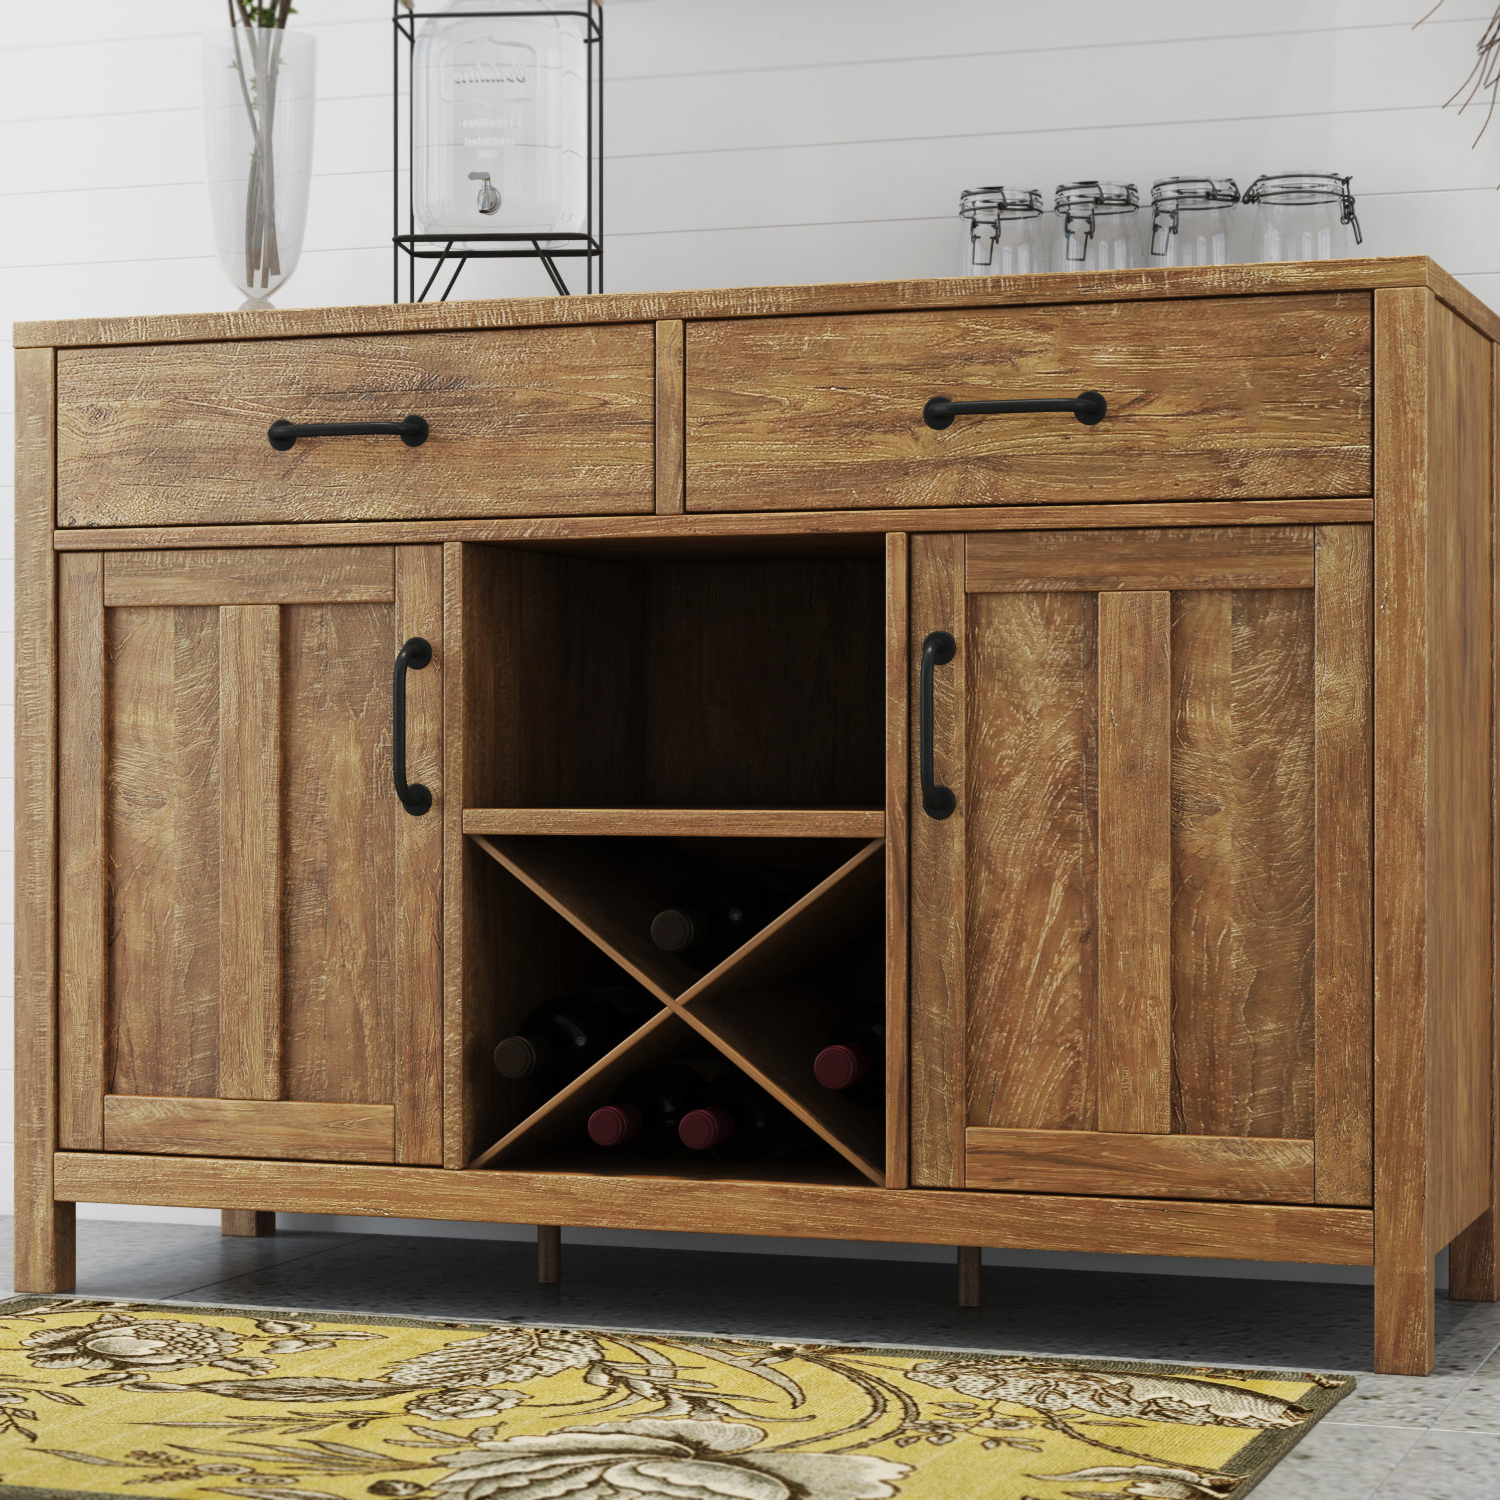 Farmhouse & Rustic Trent Austin Design Sideboards & Buffets Throughout Alegre Sideboards (View 2 of 20)